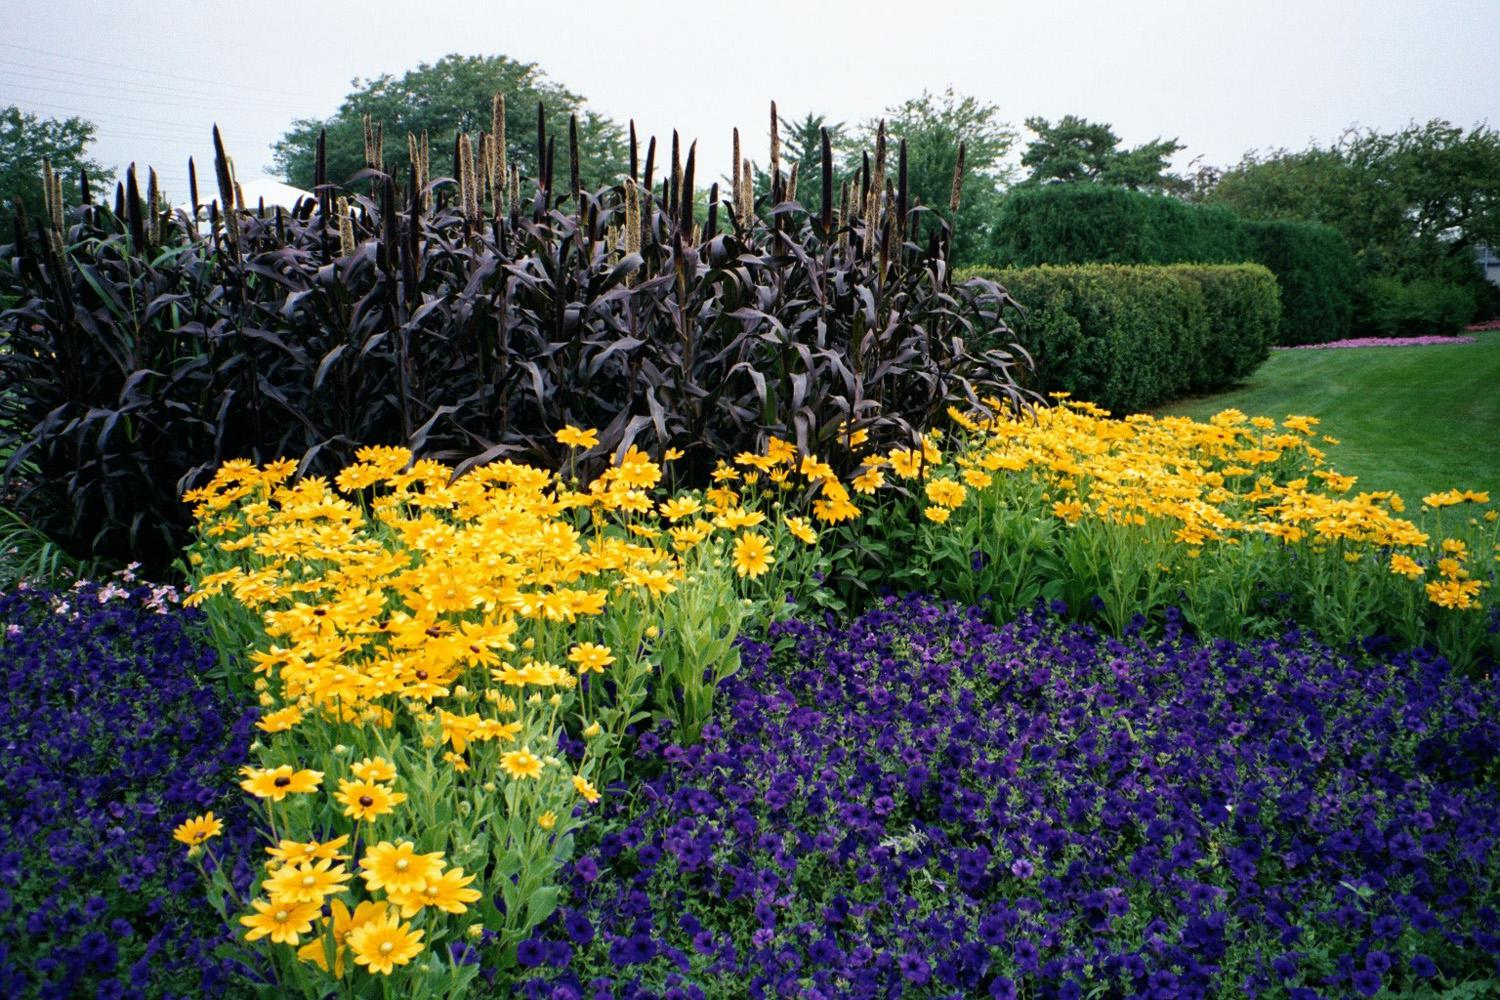 Purple Majesty ornamental millet provides an outstanding backdrop to these Prairie Sun rudbeckias and Blue Wave petunias.